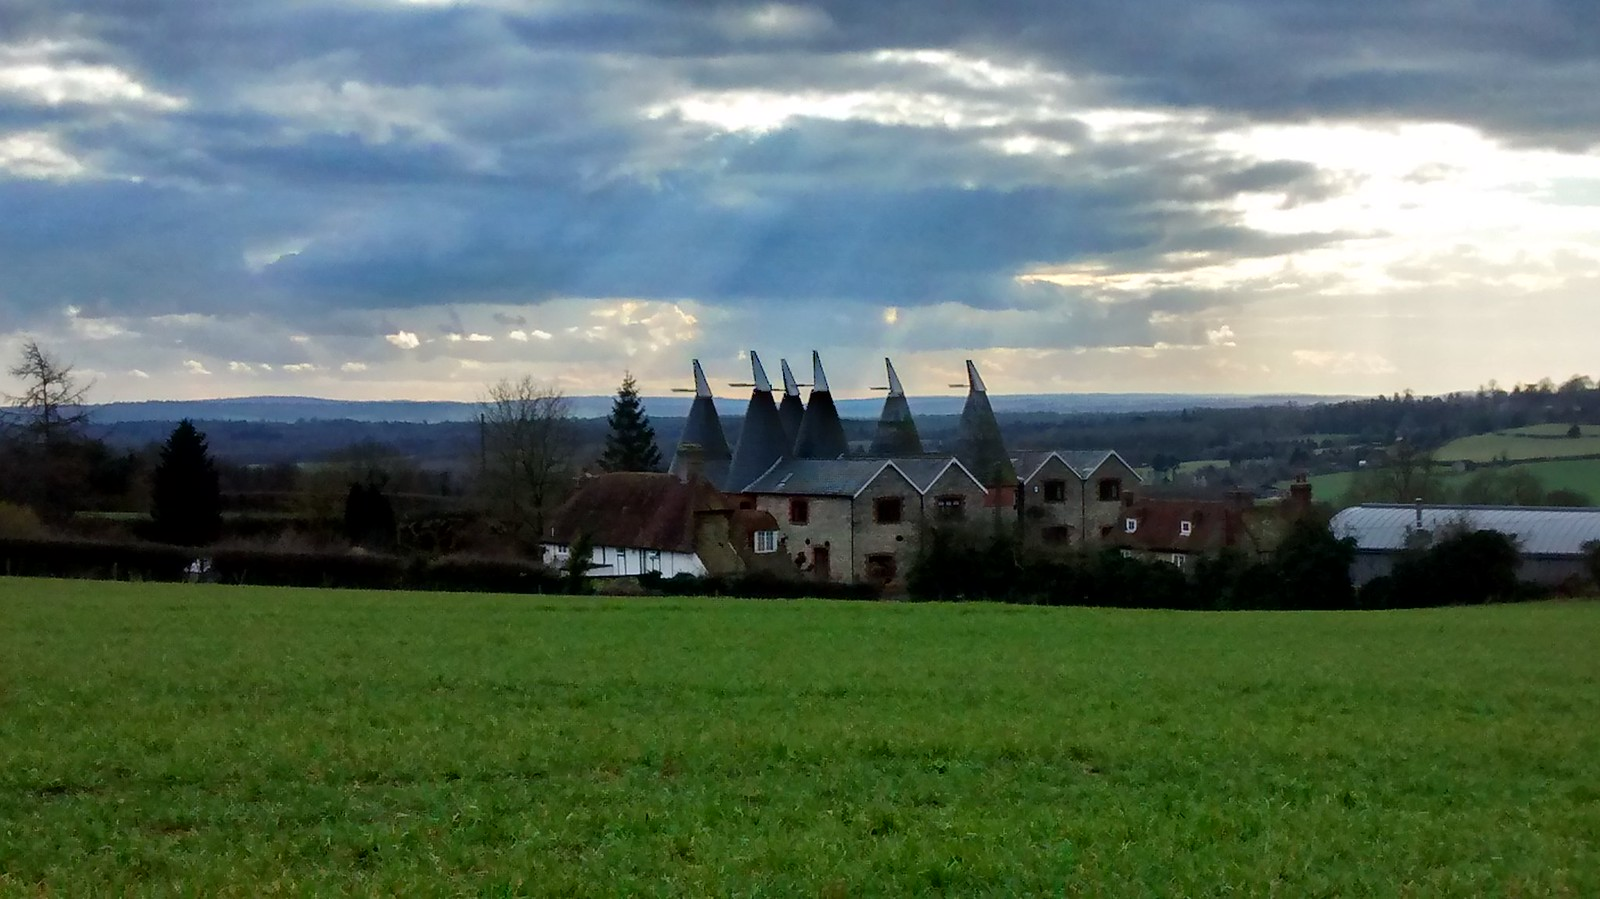 Oast Houses They went thataway